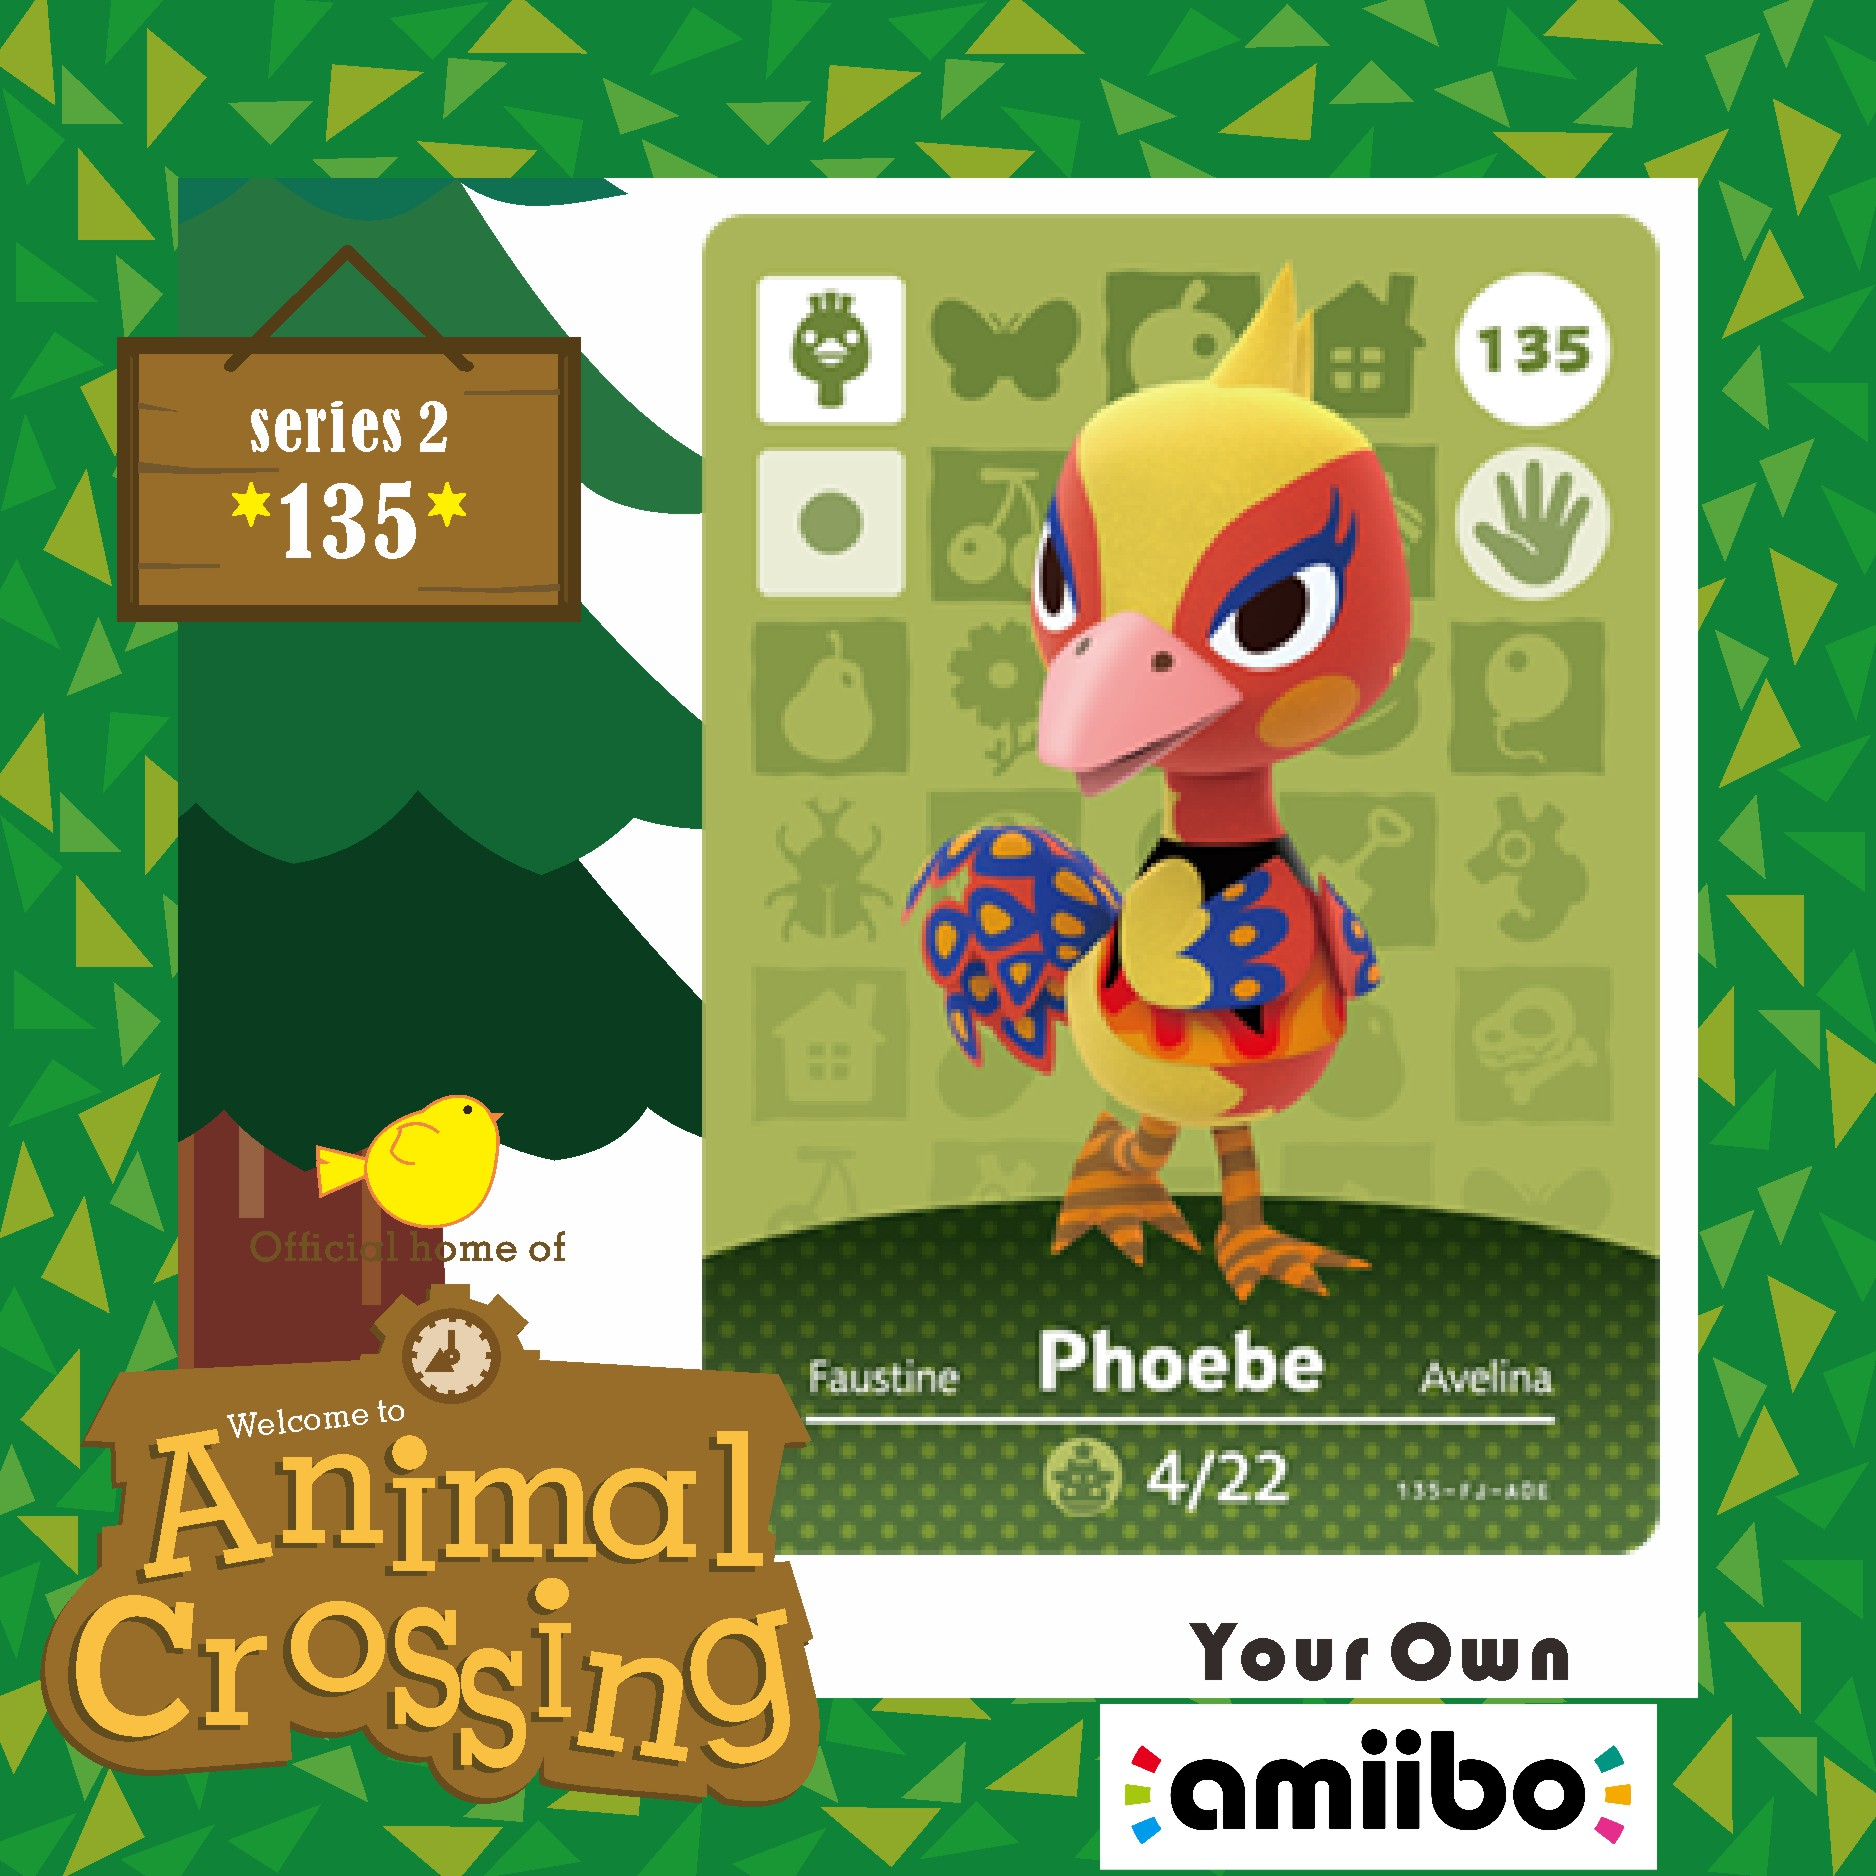 Animal Crossing Villager Amiibo Card 135 Amiibo Phoebe Animal Crossing New Horizons Villager Card Phoebe 135  Series Set Season2